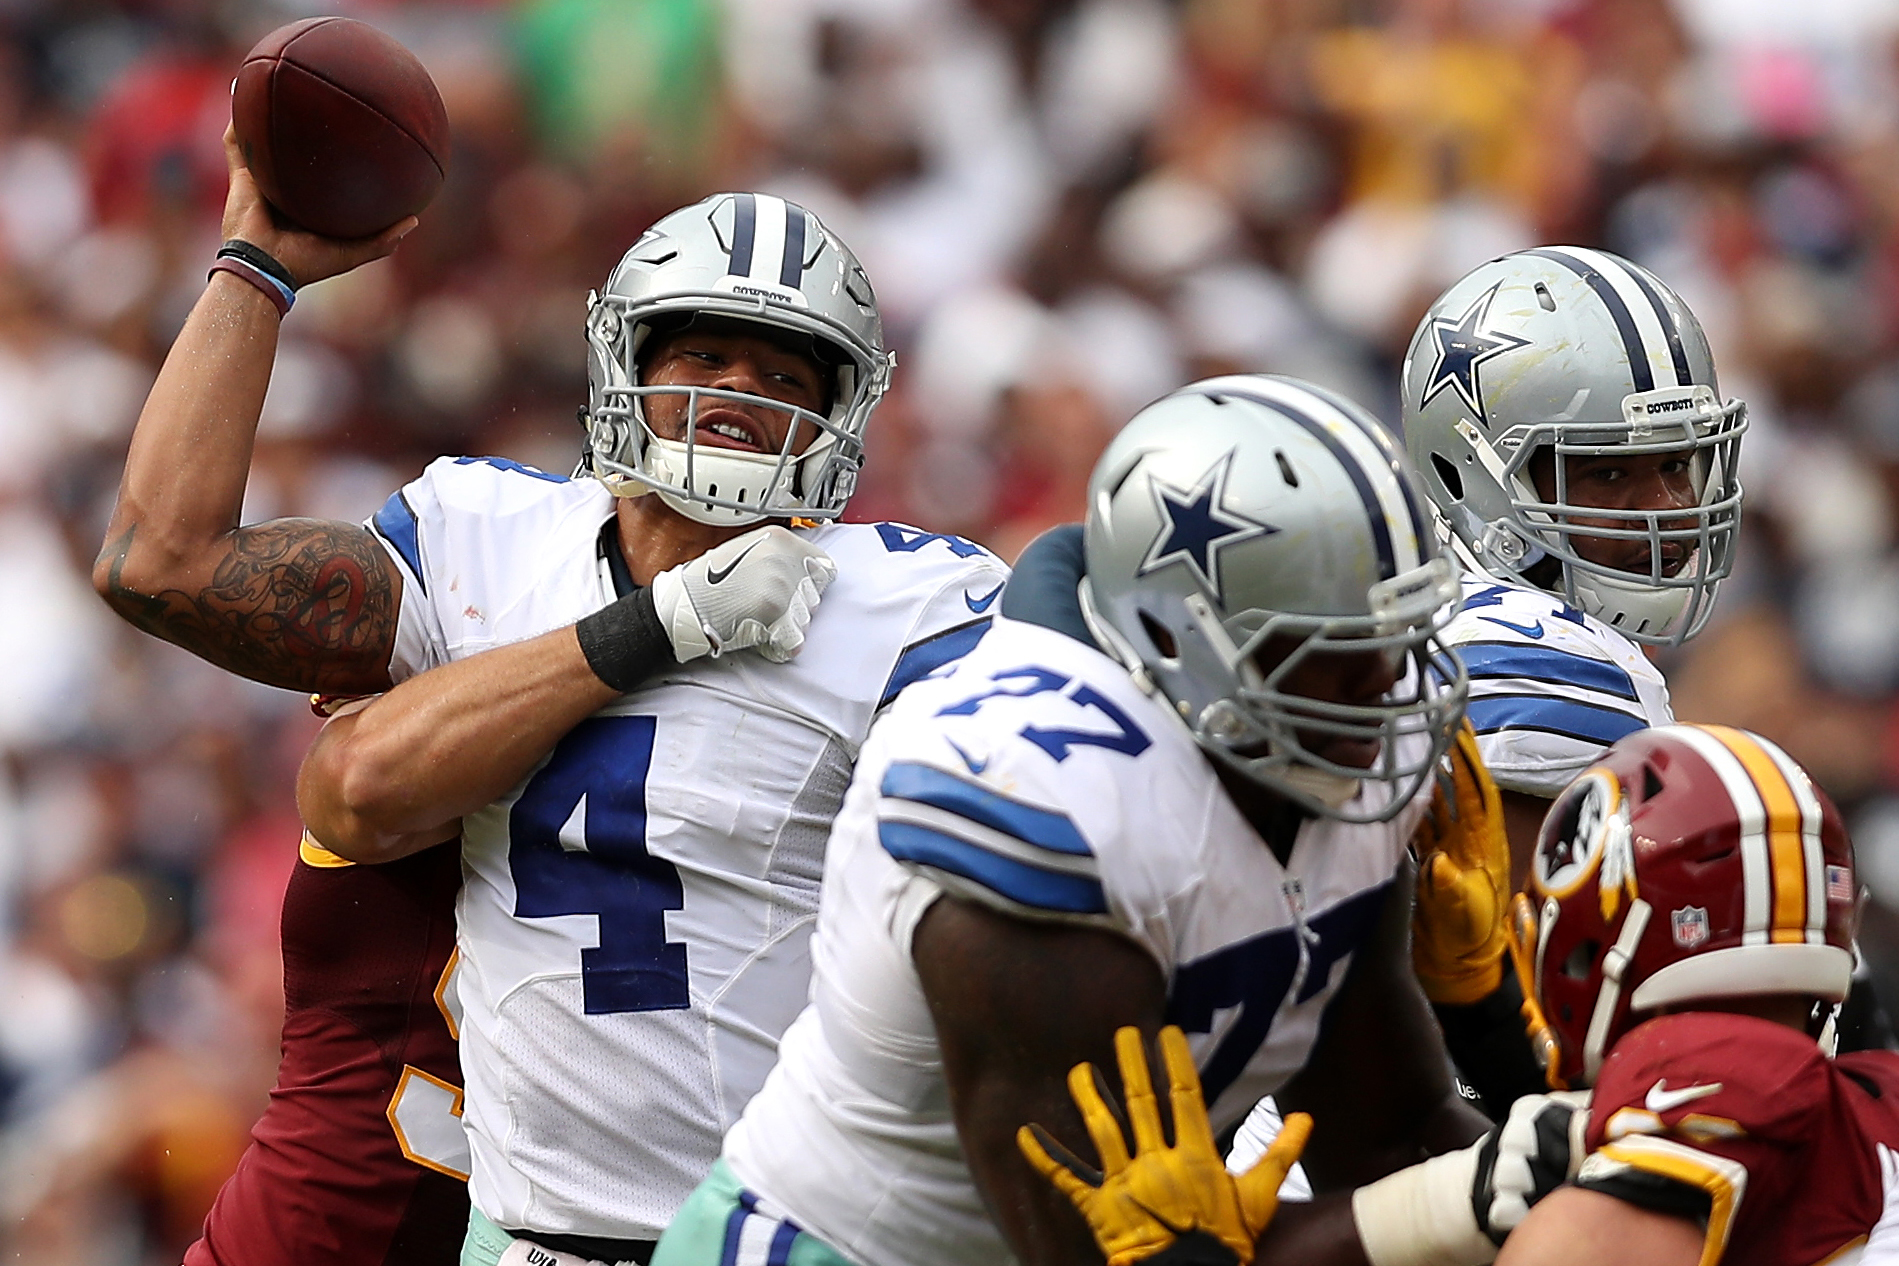 Quarterback Dak Prescott #4 of the Dallas Cowboys passes against the Washington Redskins in the fourth quarter at FedExField on September 18, 2016 in Landover, Maryland.